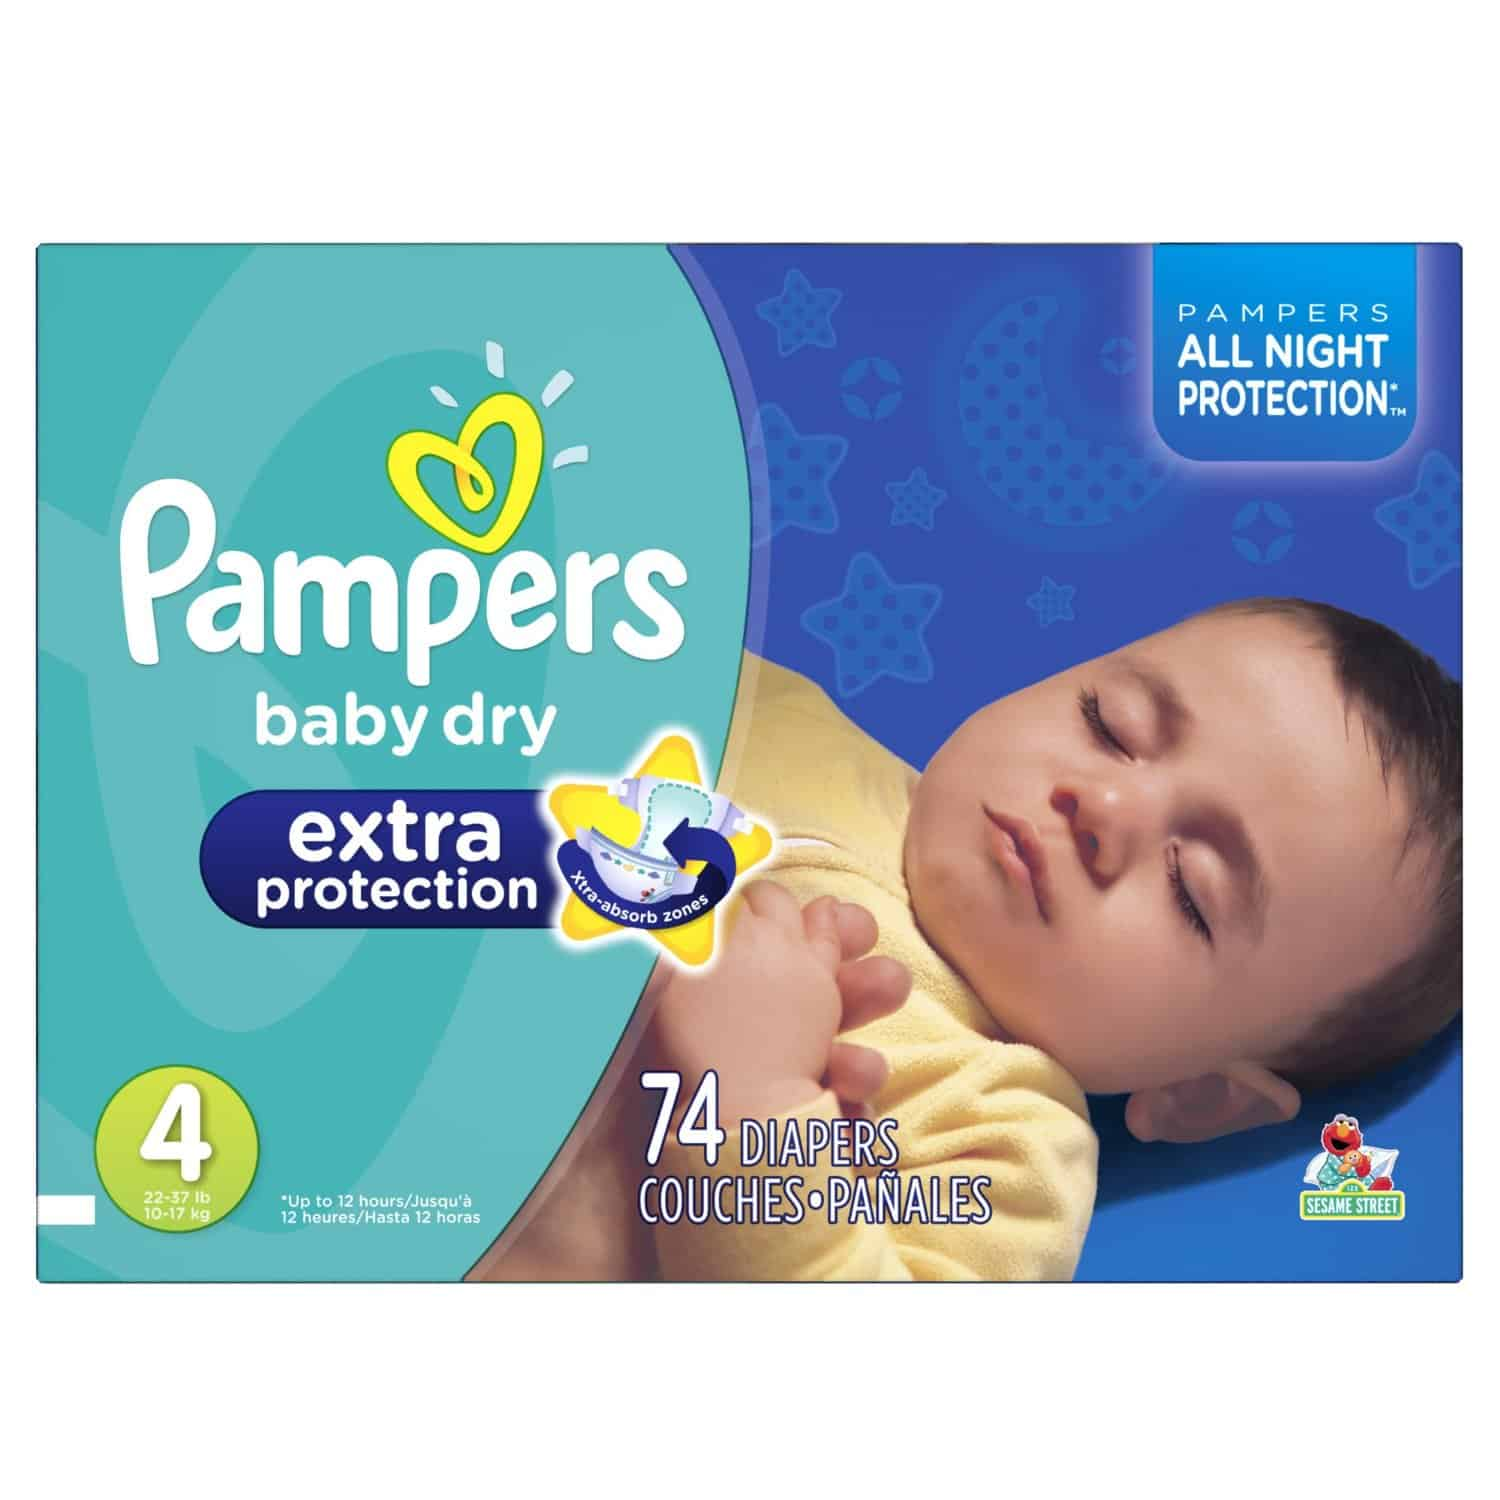 Pampers nighttime diapers coupons